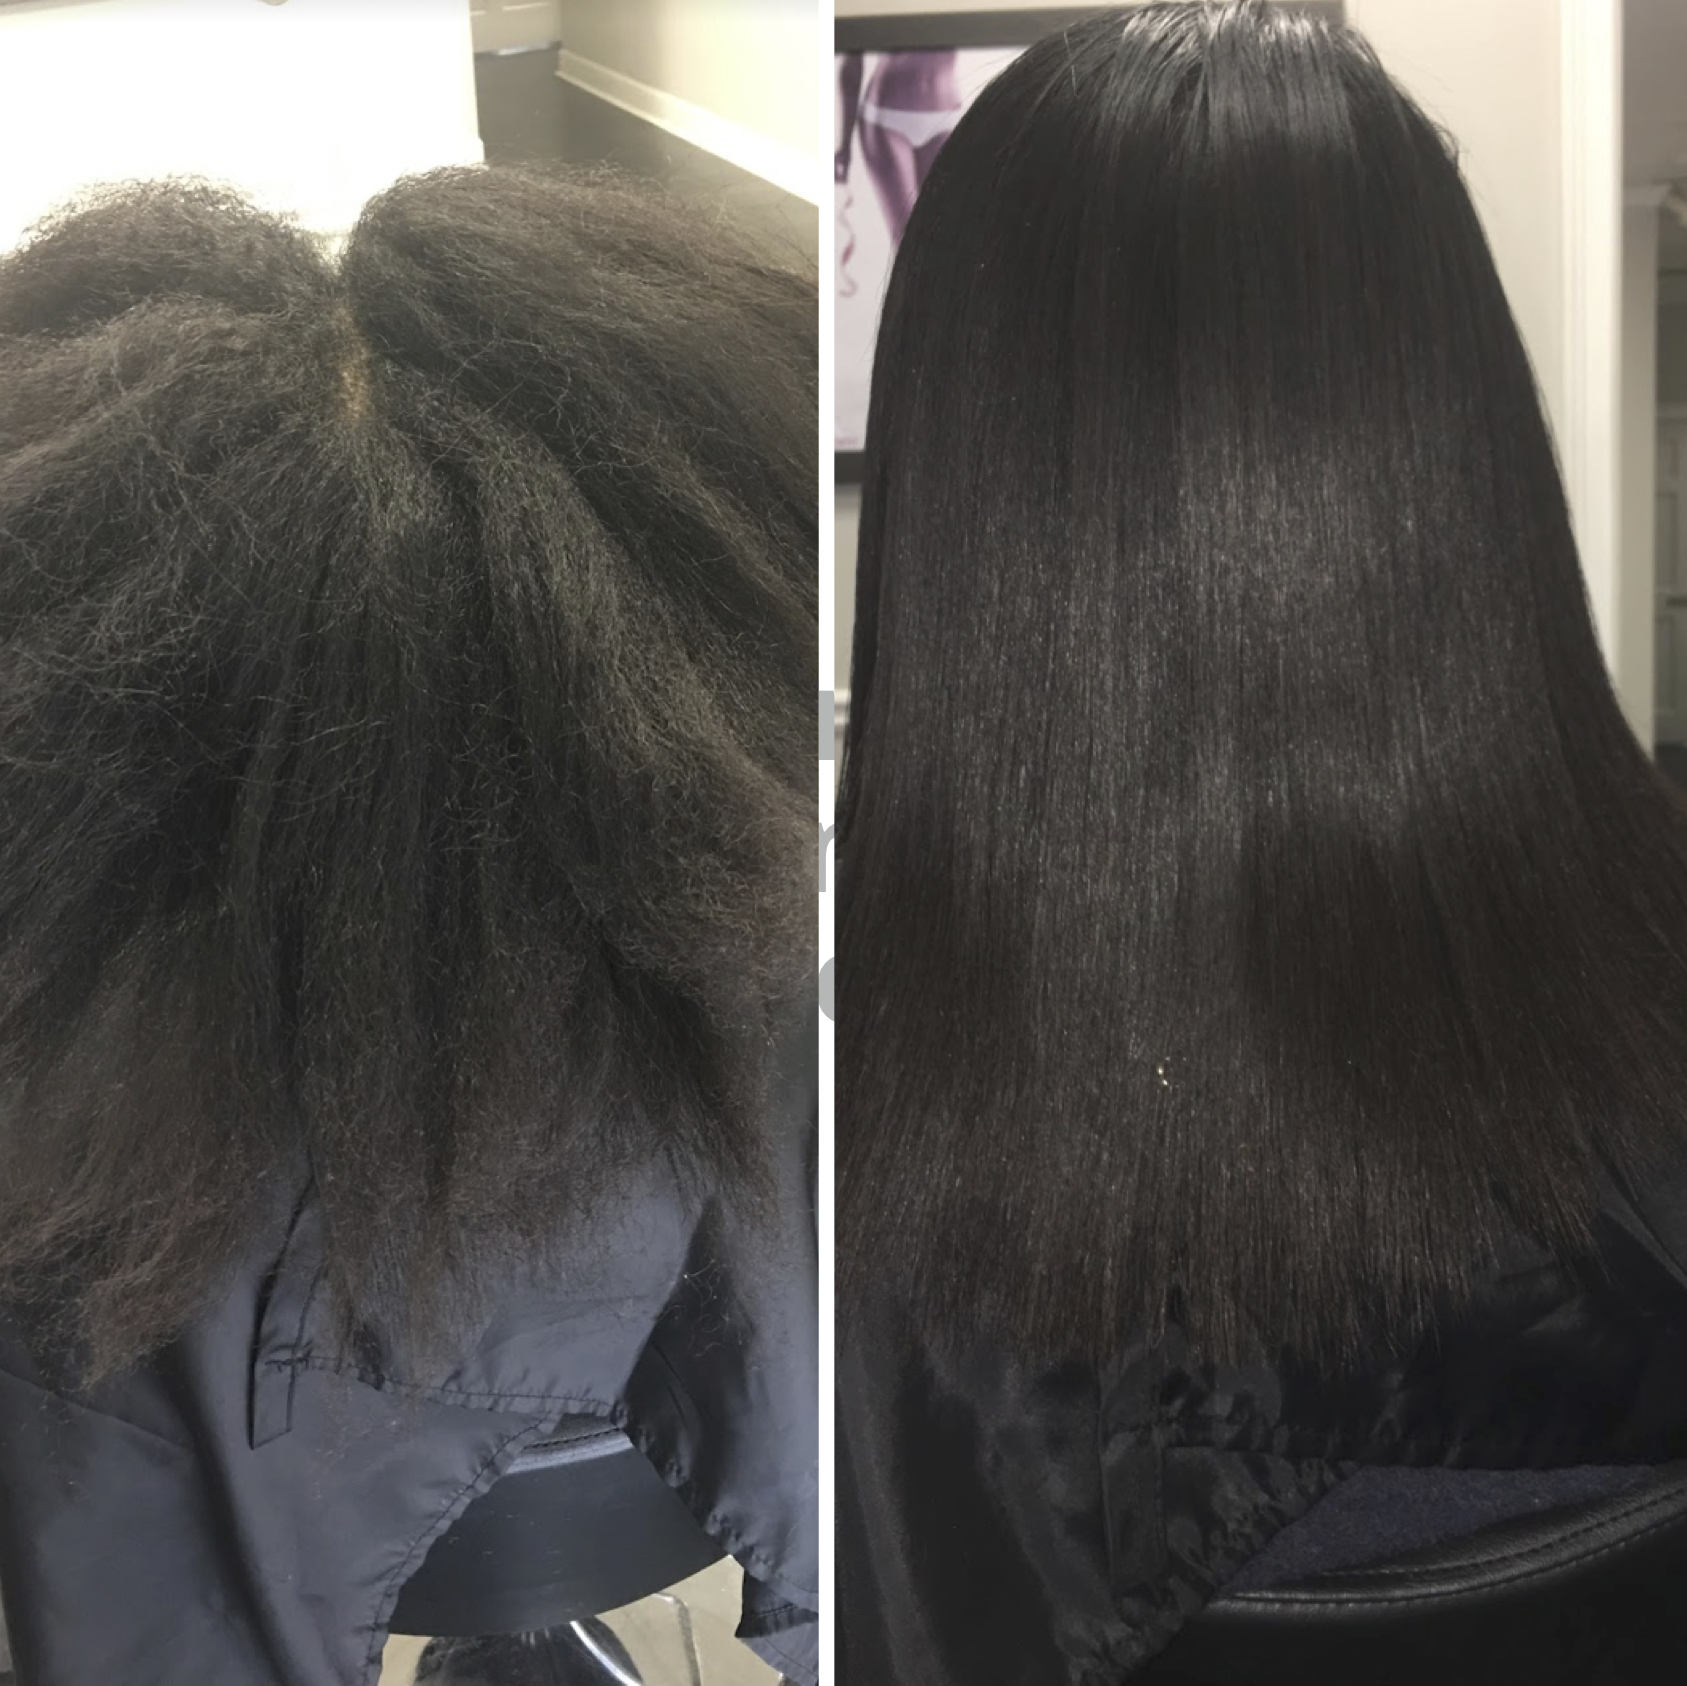 Natural Texture Smoothing Treatment